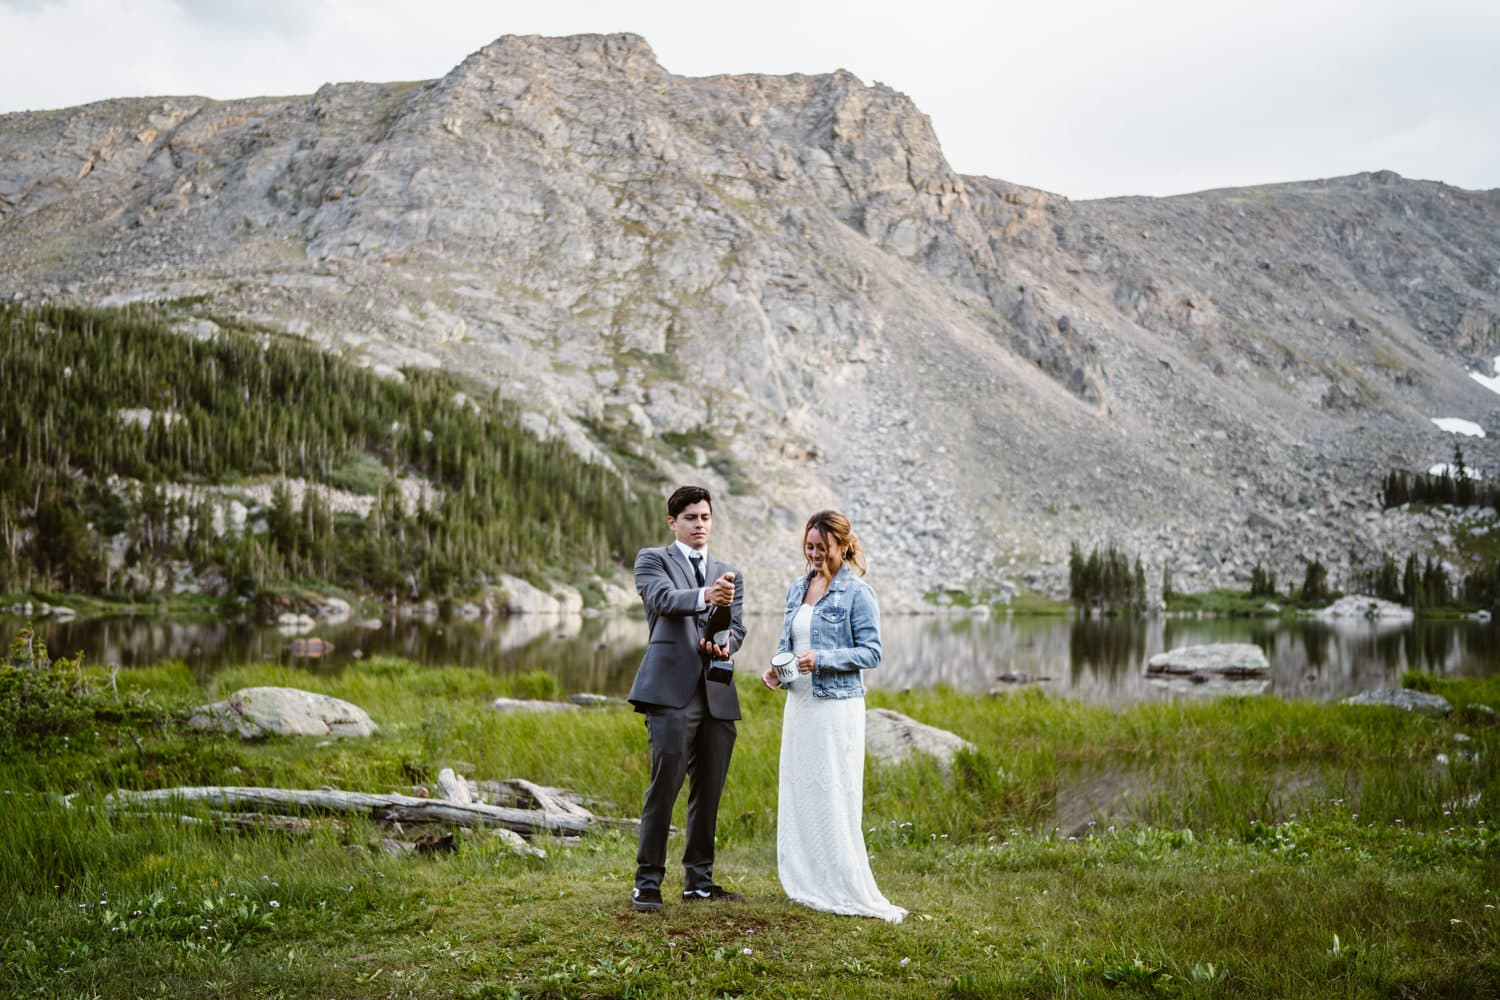 Bride and Groom Spray Champagne Elopement Ceremony Ideas